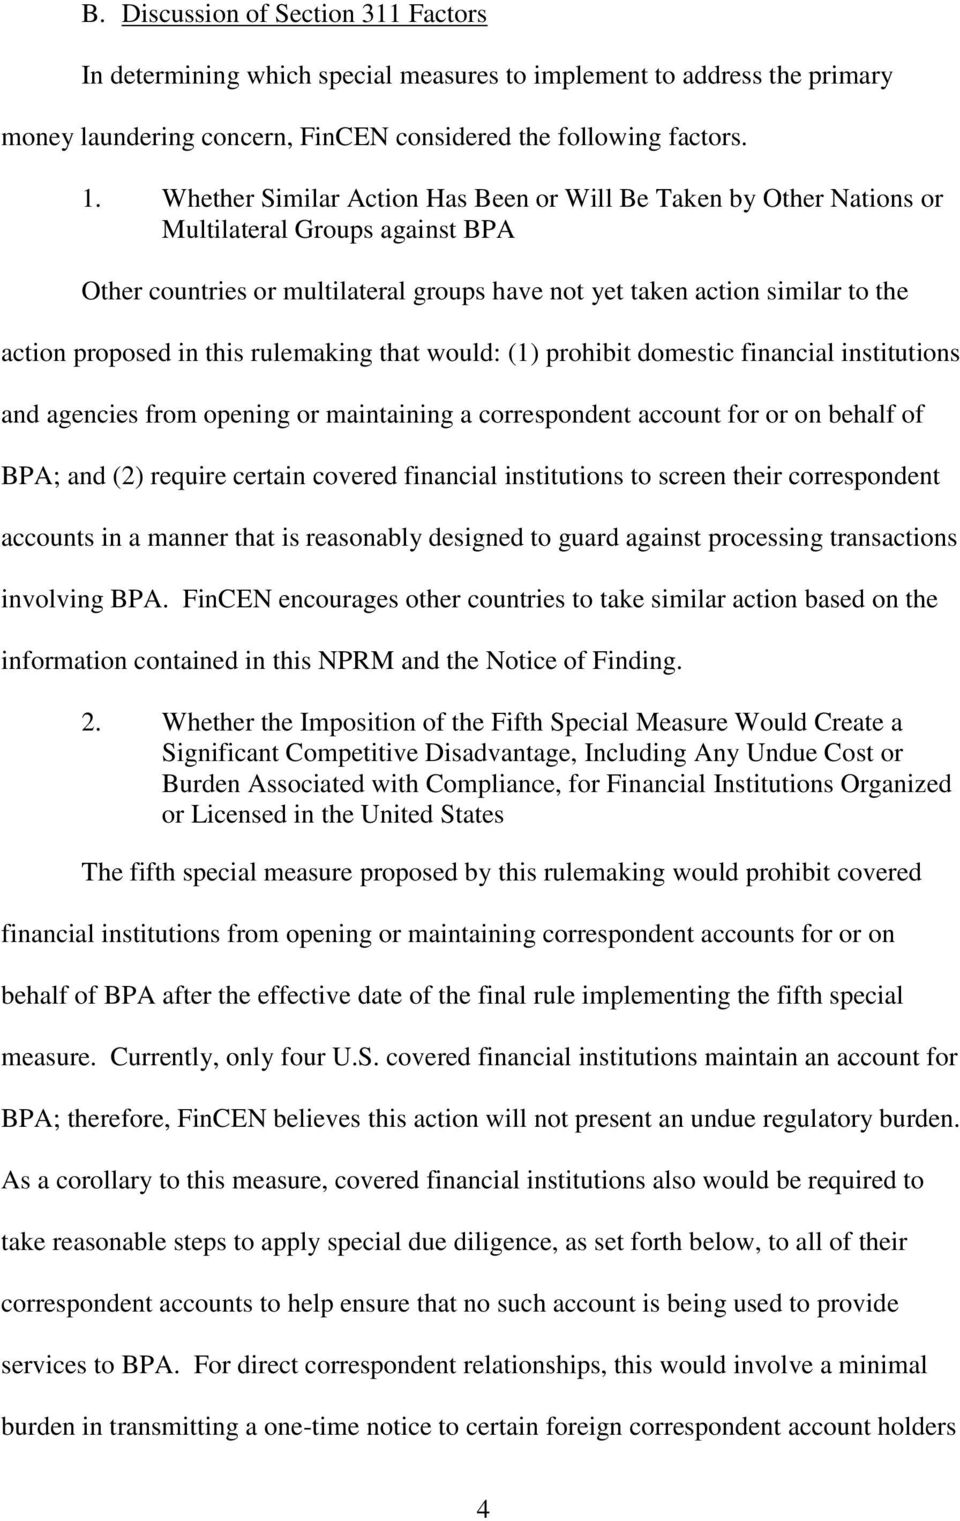 this rulemaking that would: (1) prohibit domestic financial institutions and agencies from opening or maintaining a correspondent account for or on behalf of BPA; and (2) require certain covered